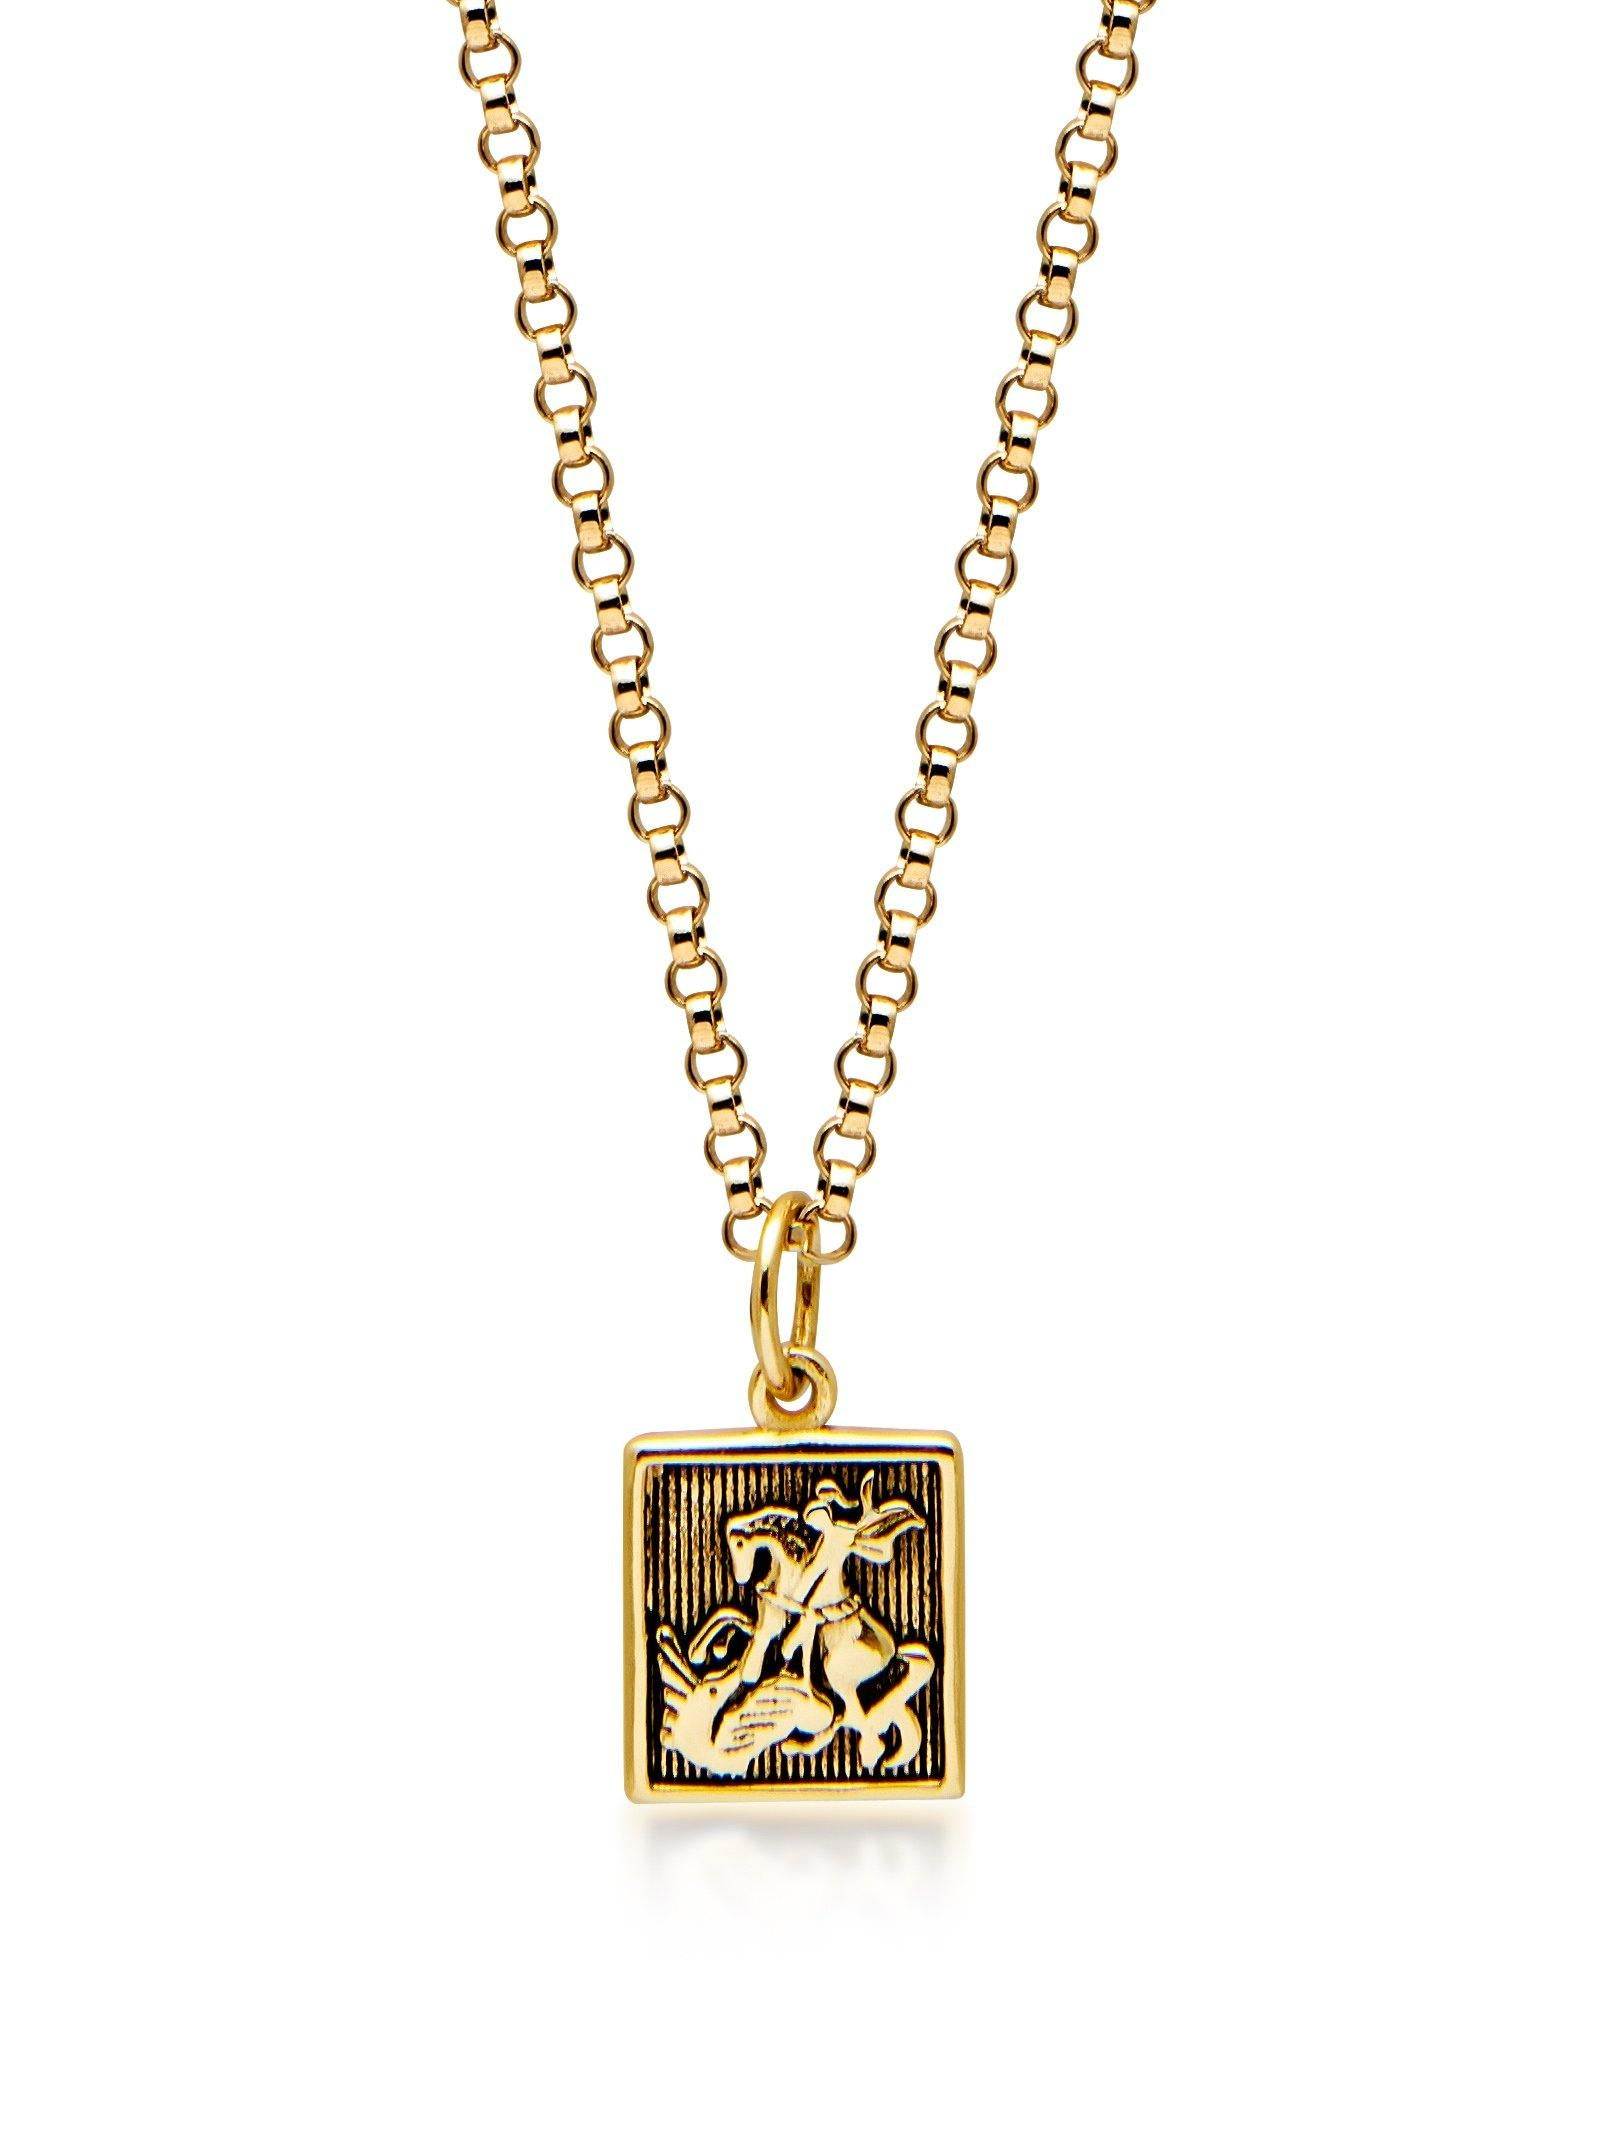 Women's Gold Necklace with Saint George and The Dragon Pendant